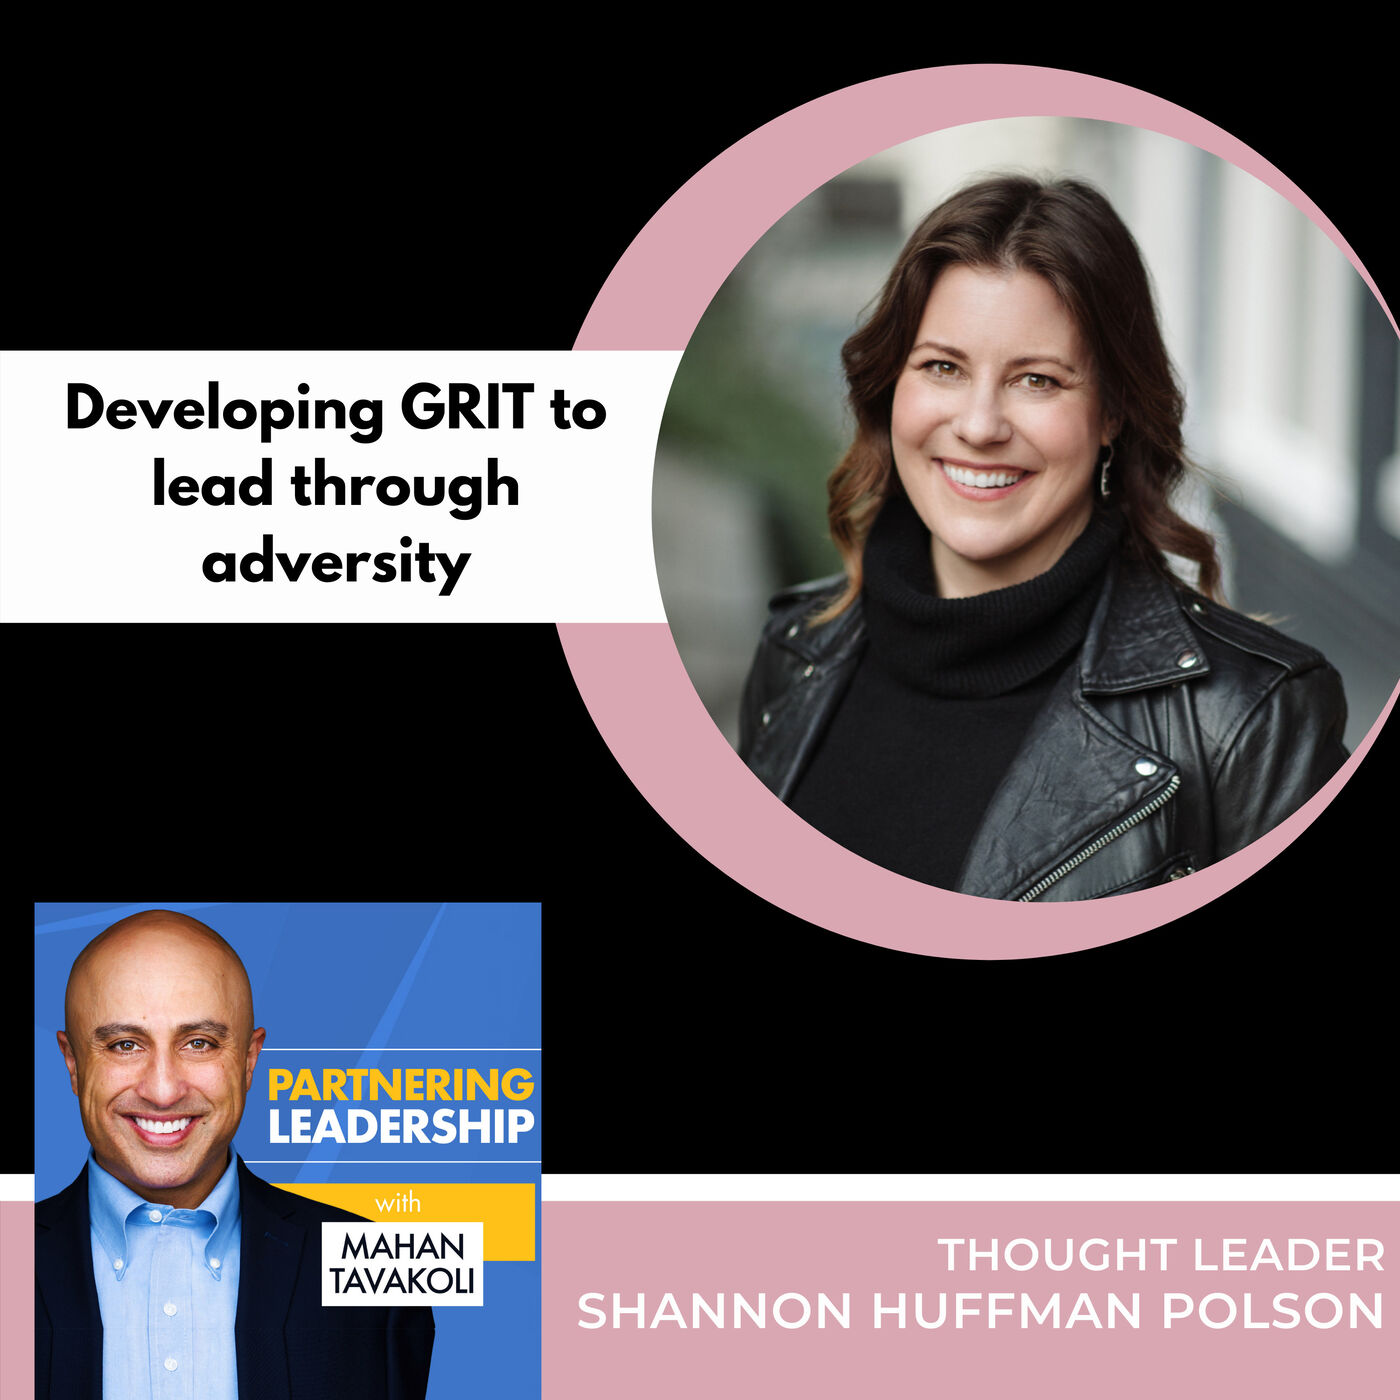 Developing GRIT to lead through adversity with Shannon Huffman Polson | Thought leader